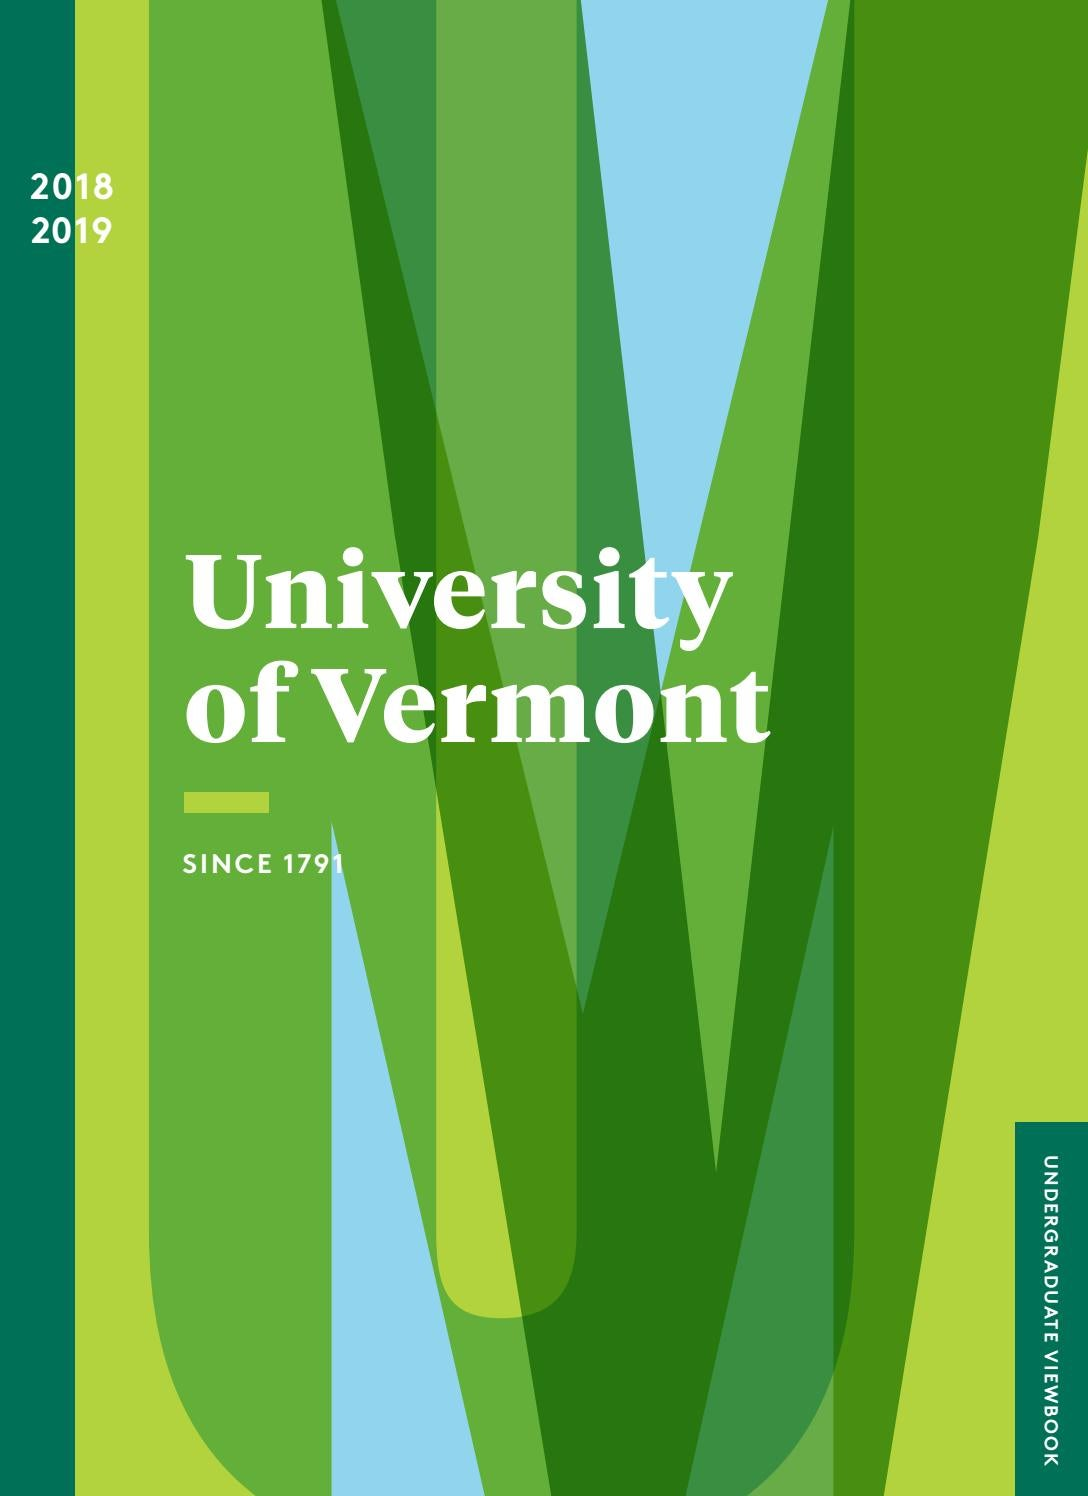 University of Vermont Admissions Viewbook 2018-19 by